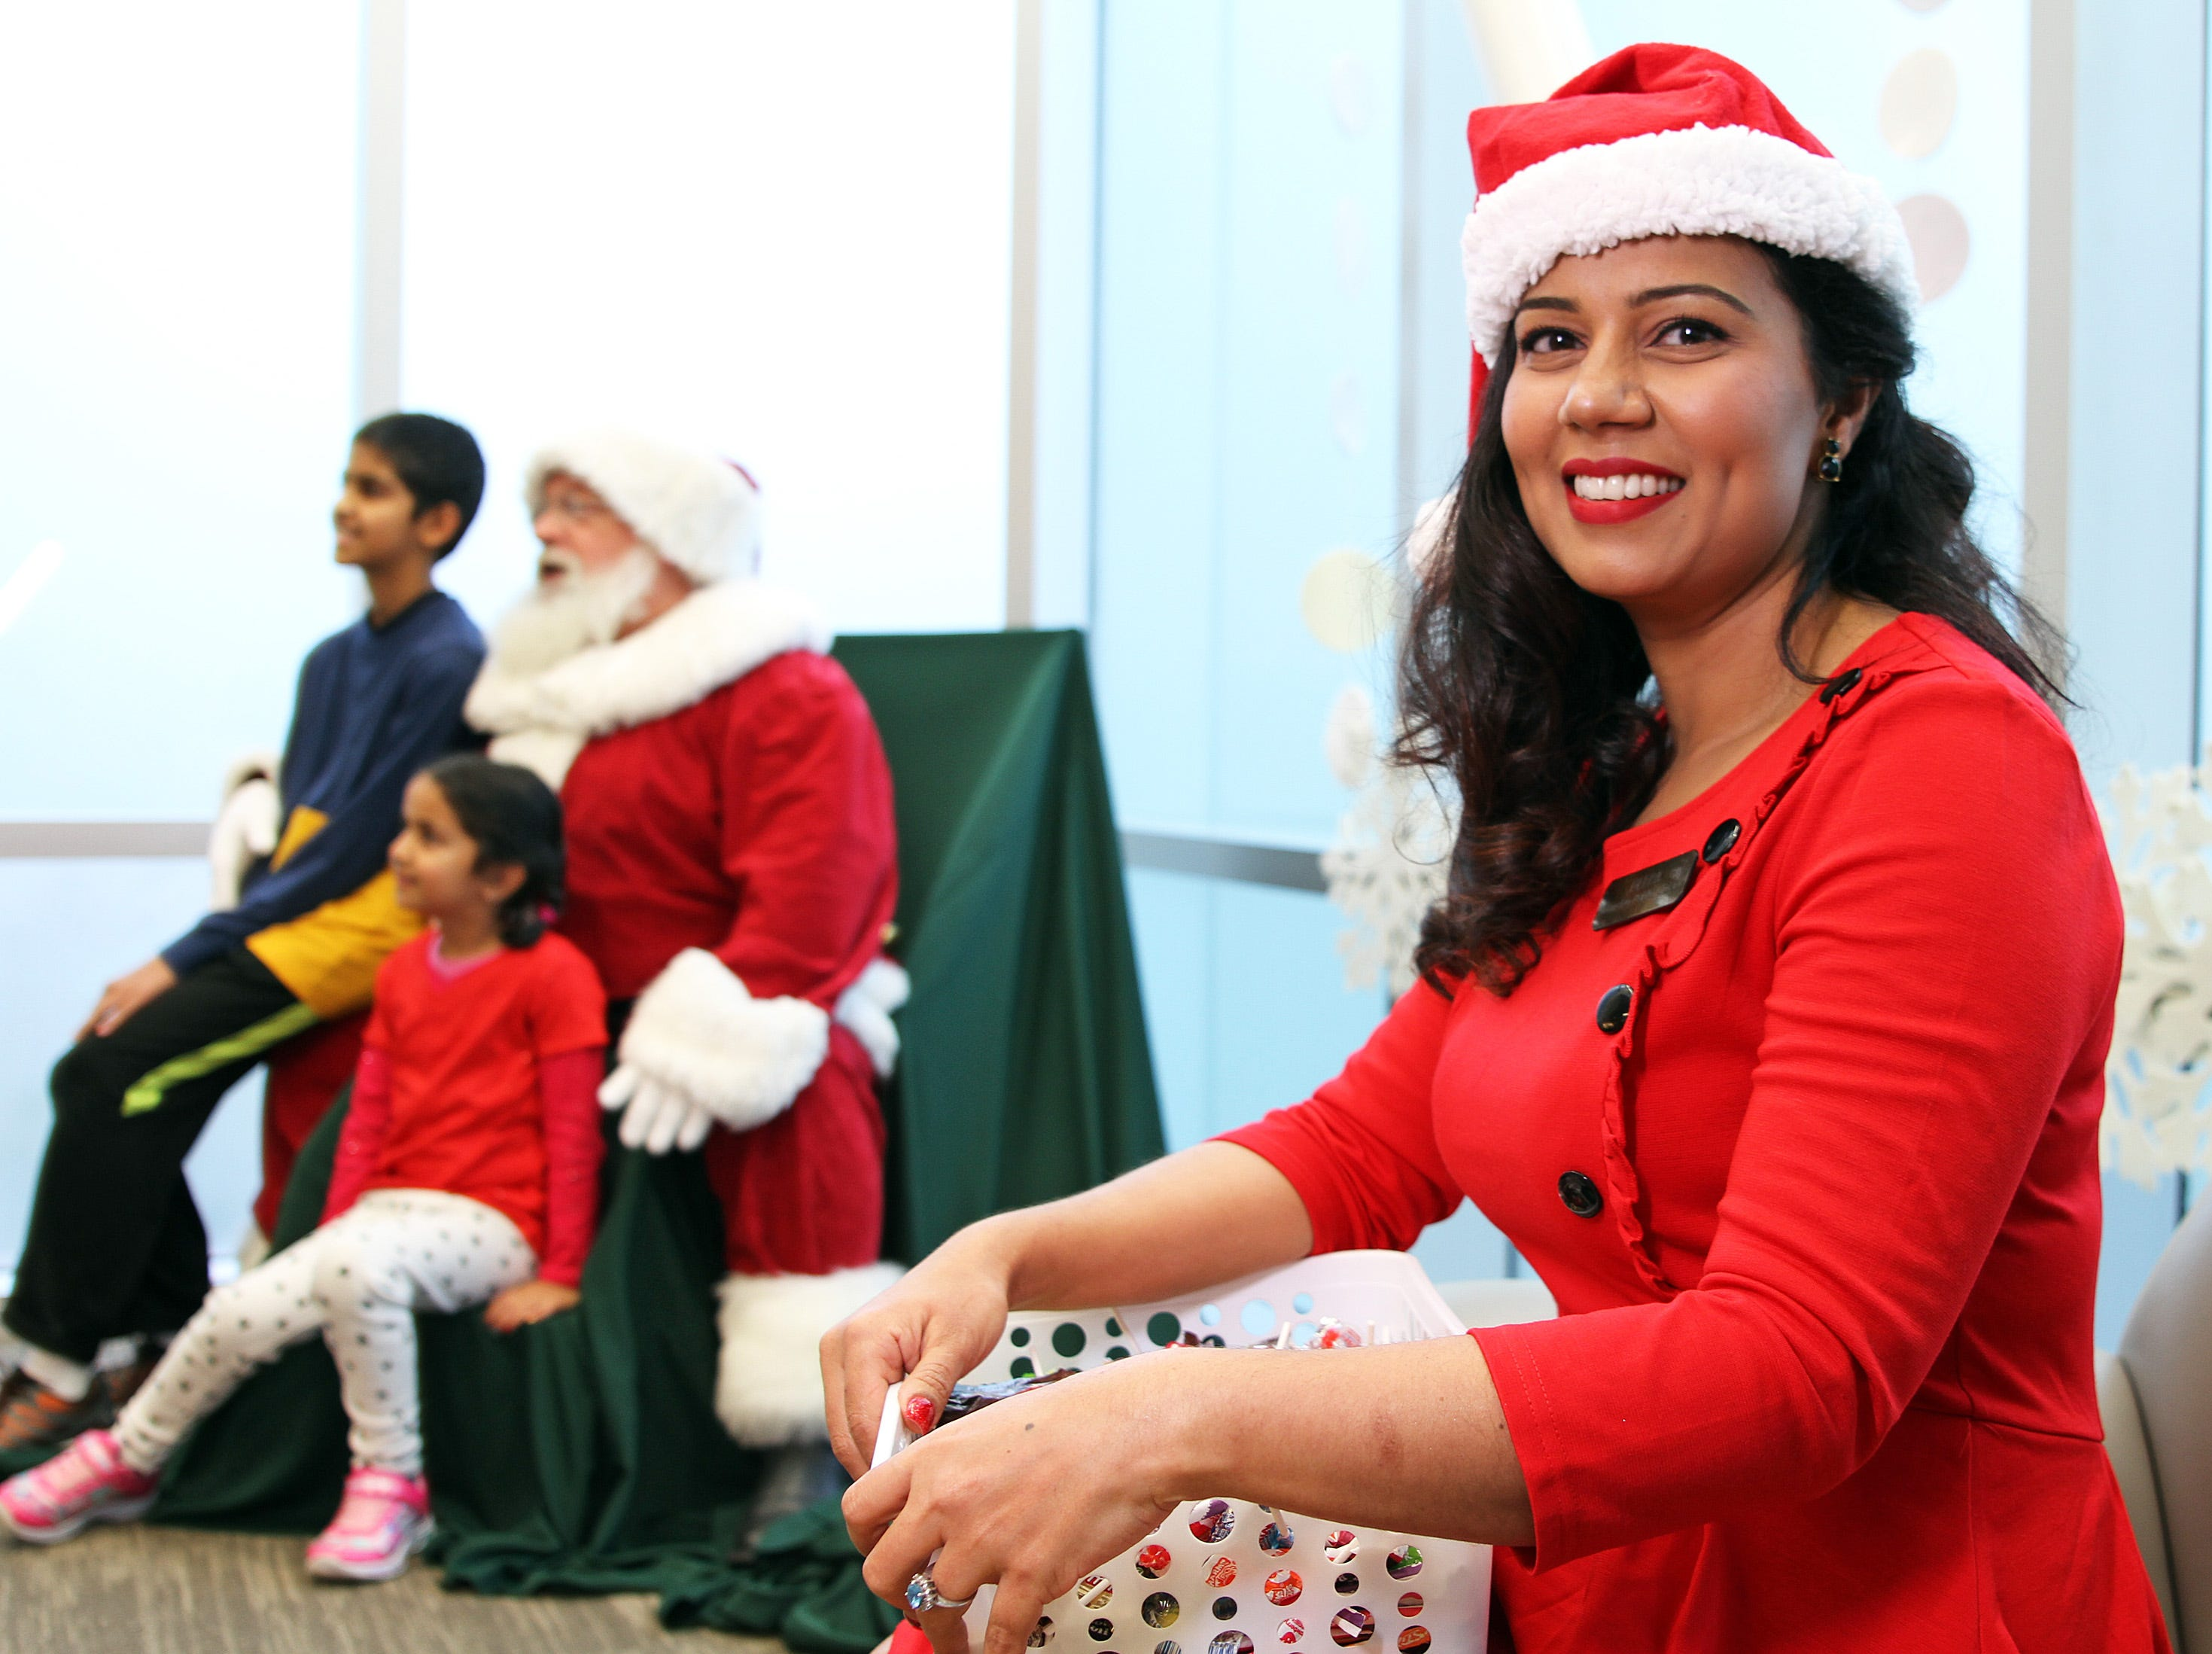 Library Associate Deepa Swaroop helps Santa hand out candy to the kids after their visit during Holidays in Johnston on Saturday, Dec. 1, 2018 at the Johnston Public Library featuring a gingerbread house contest, cookie decorating, holiday music performed by the Johnston Middle School Ninth Grade Chamber Choir, story time and Santa.